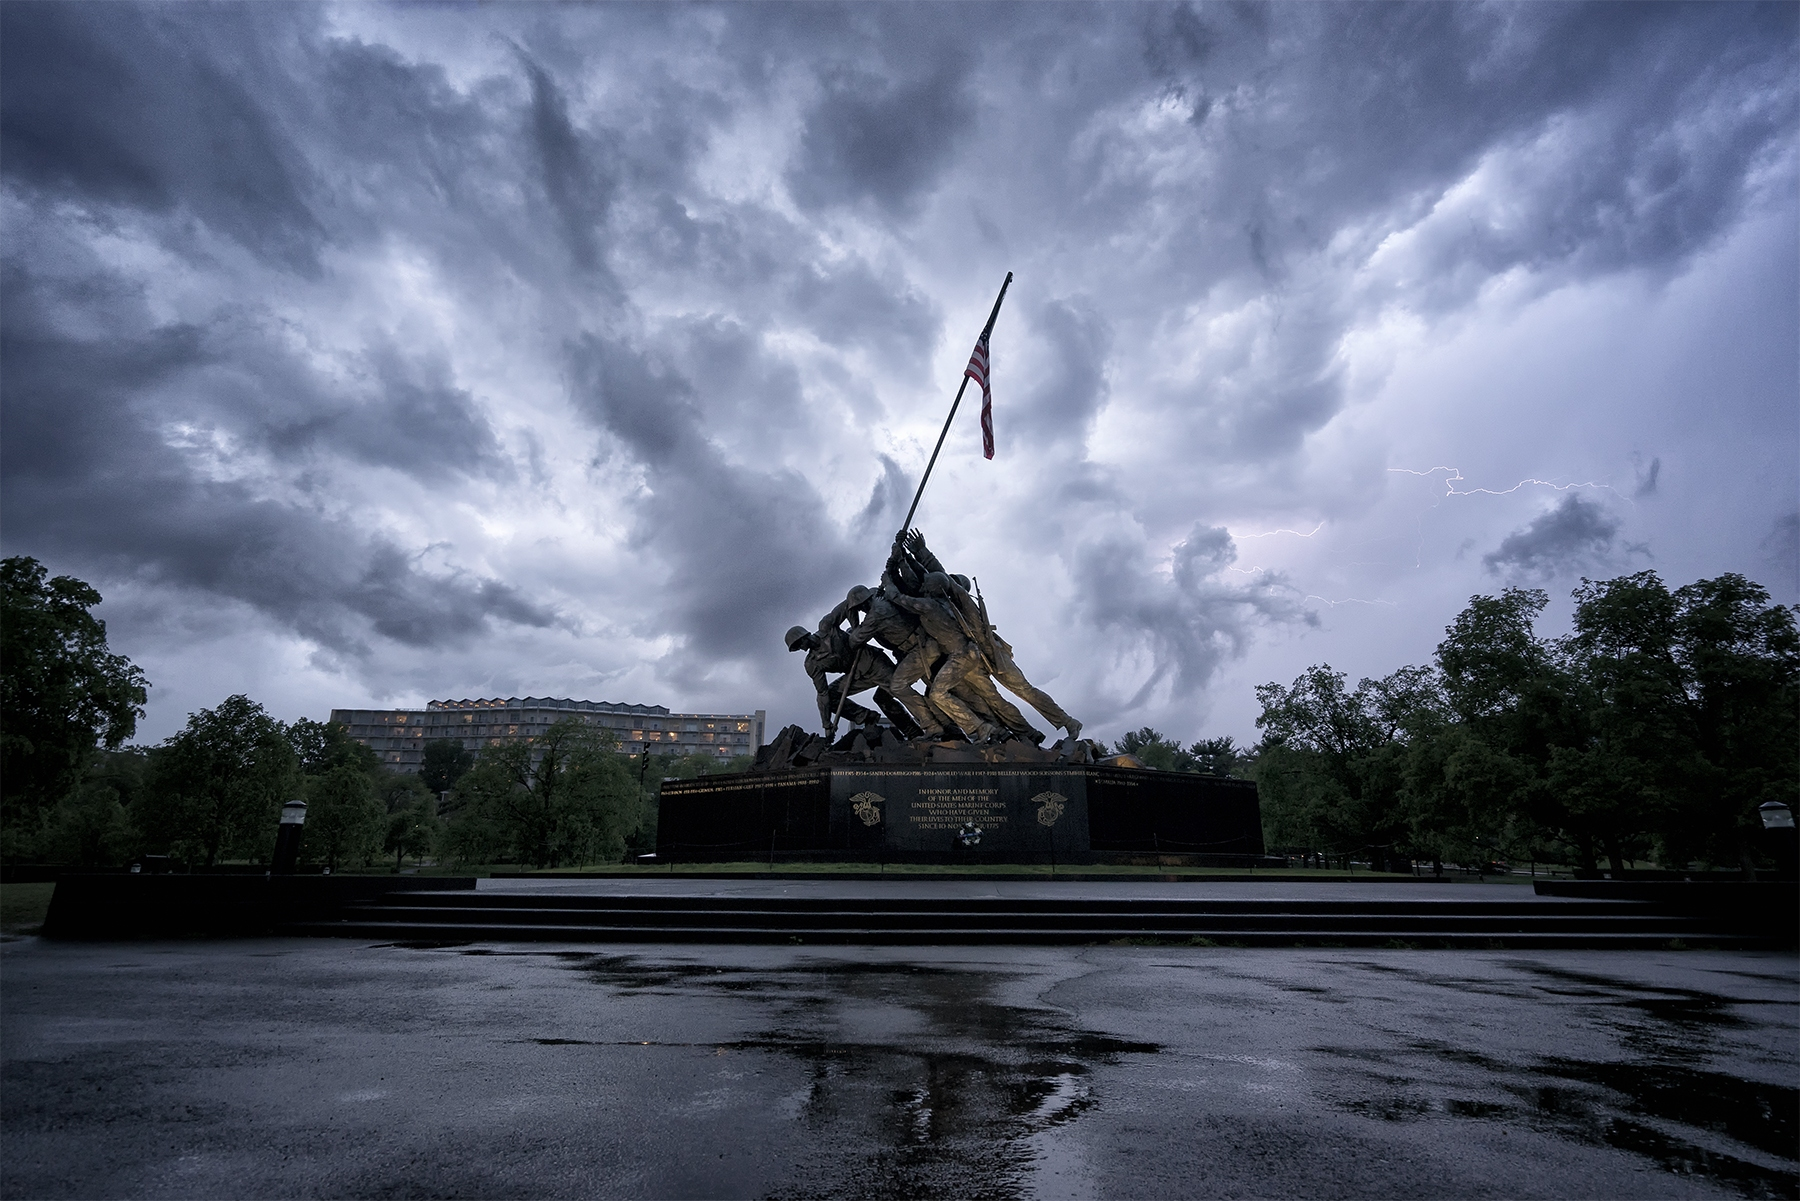 iwo jima, lightning, storm, clouds, rain, arlington, virginia, va, reflection, rain,